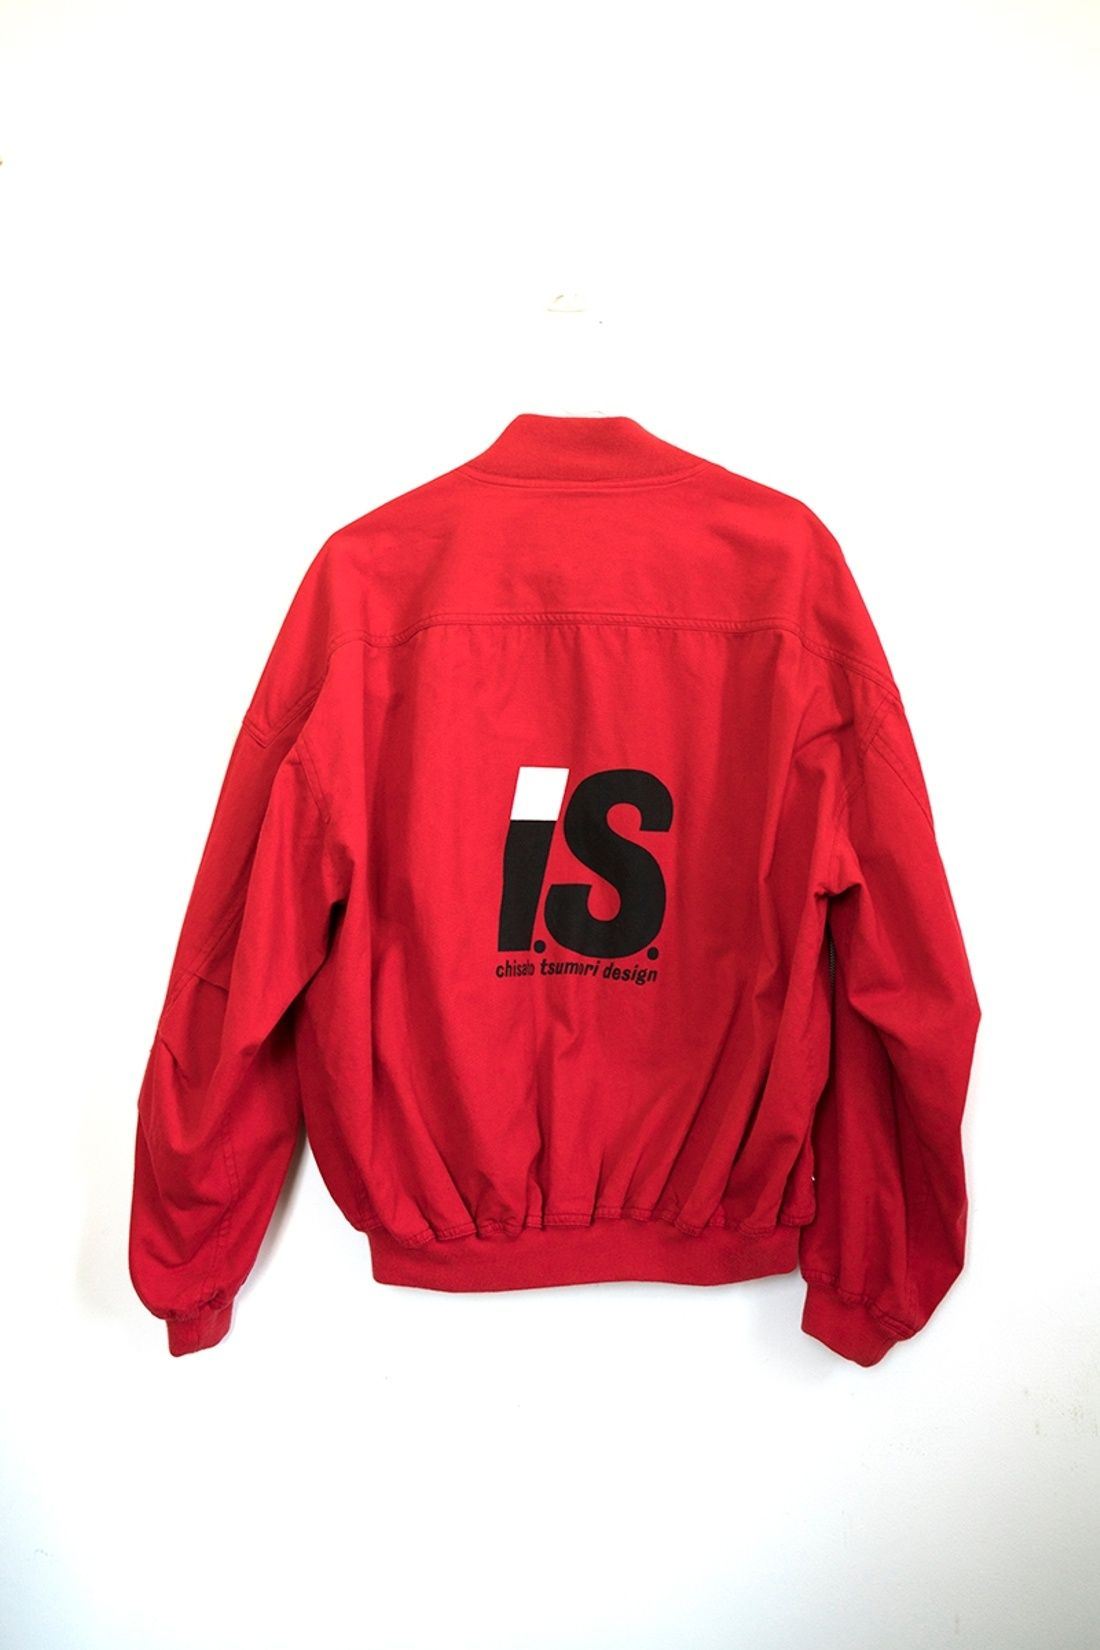 40a82d6e Issey Miyake Archival 80s I.S. Akira Red Cotton Bomber Jacket Size S $849 -  Grailed